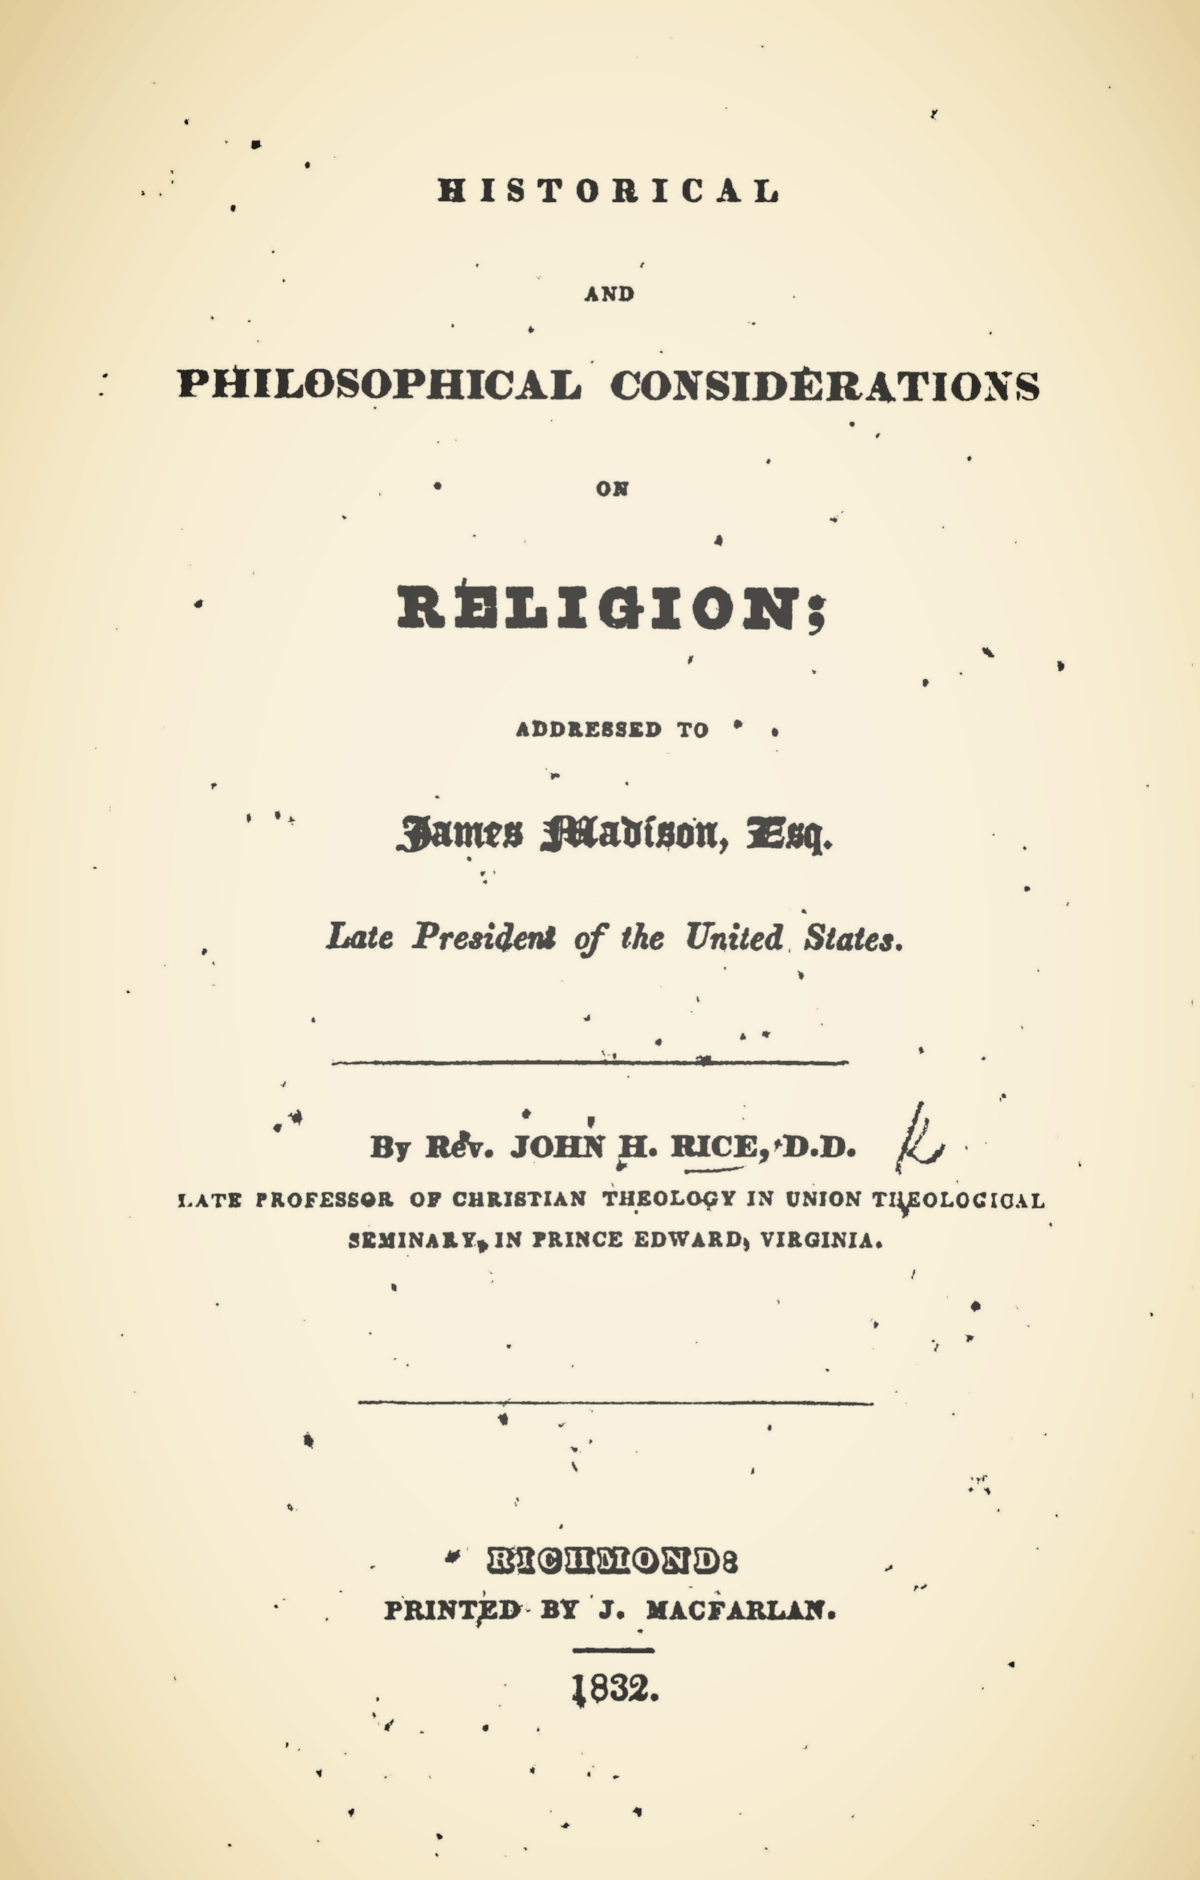 Rice, John Holt, Historical and Philosophical Considerations on Religion Title Page.jpg